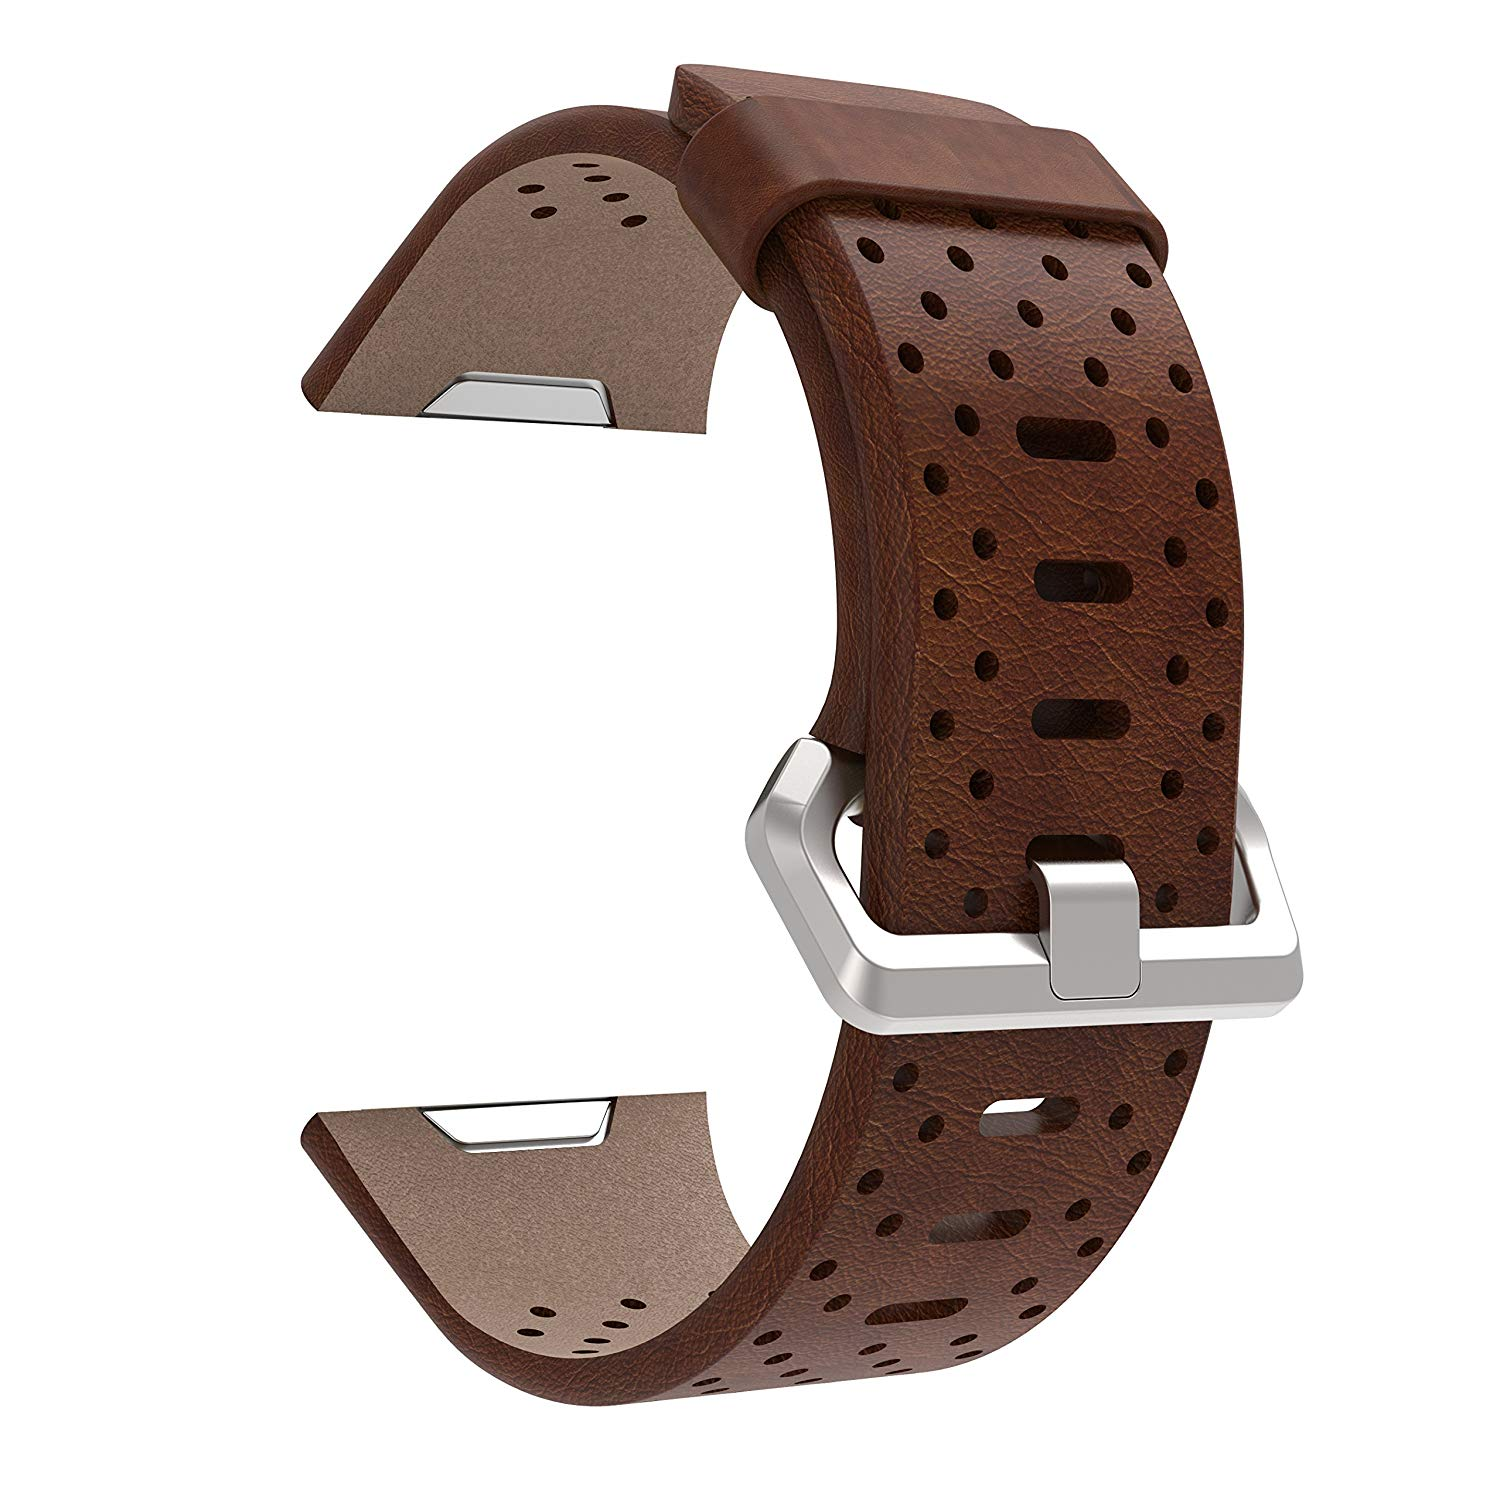 For Fitbit Ionic Watch Band,Genuine Leather Replacement Accessories Wrist Straps for Fitbit Ionic Smart Fitness Watch(Brown)